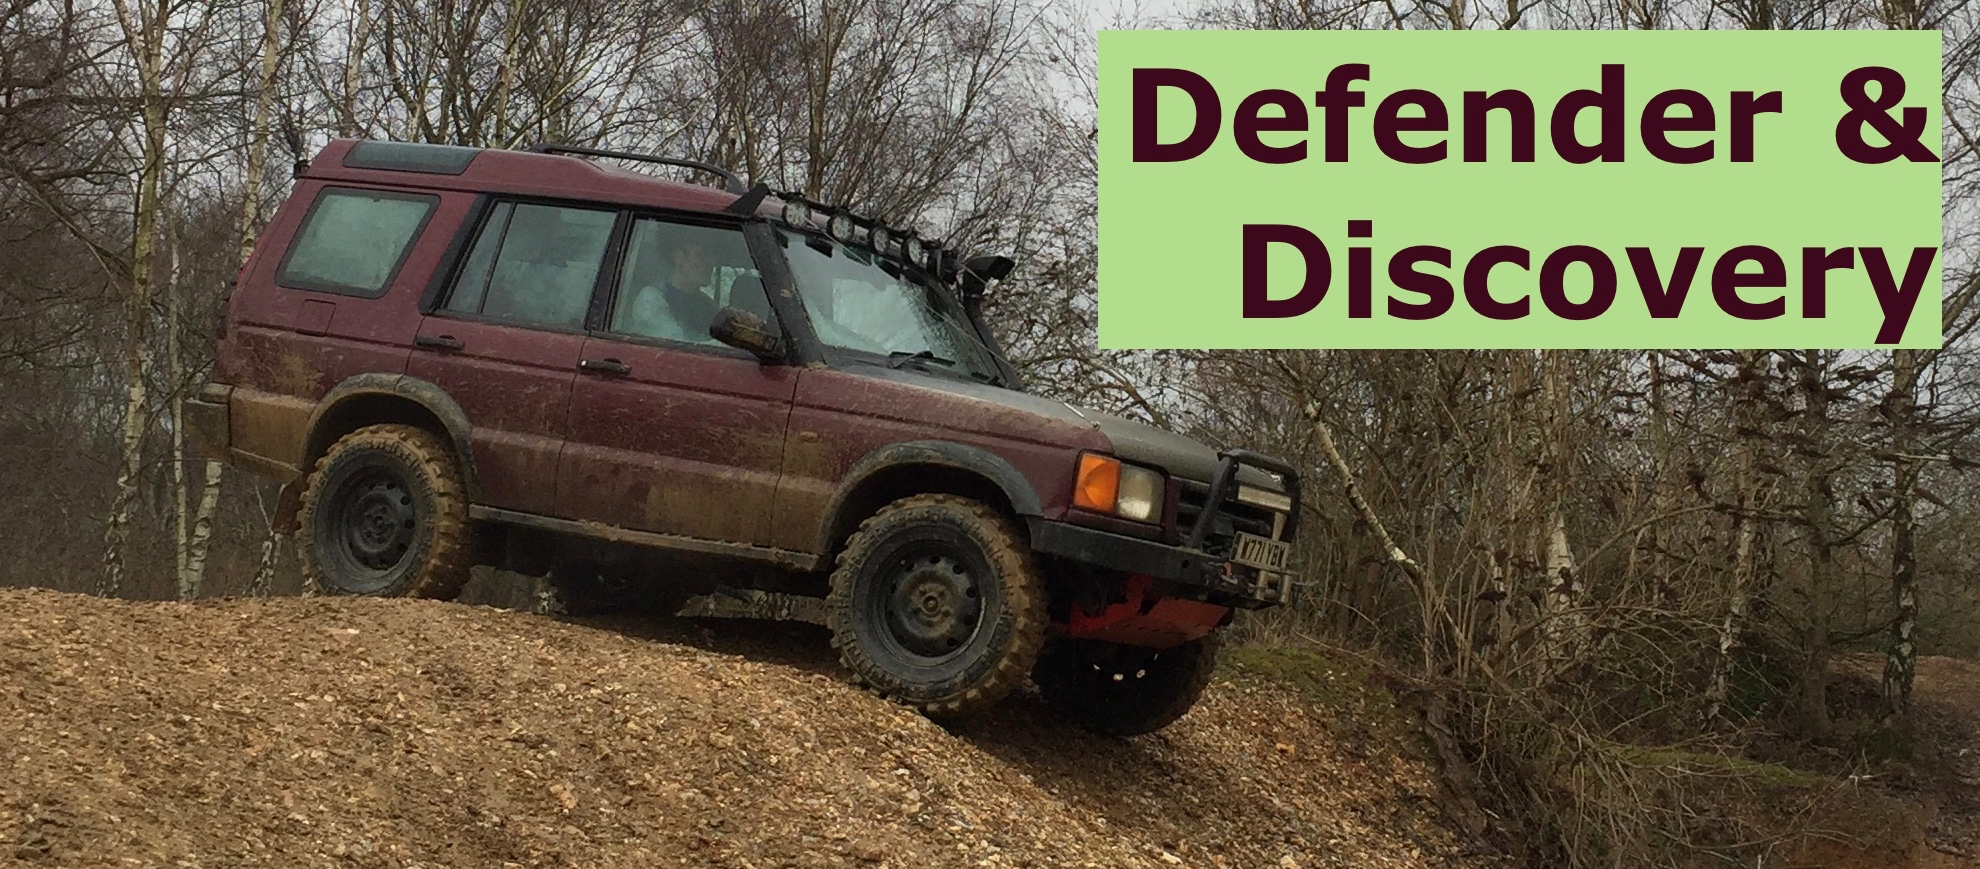 The title card showing a photograph from an offroad day showing an offroad modified Land Rover Discovery Series 2, model designation L318, in red atop a muddy hill about to descend.